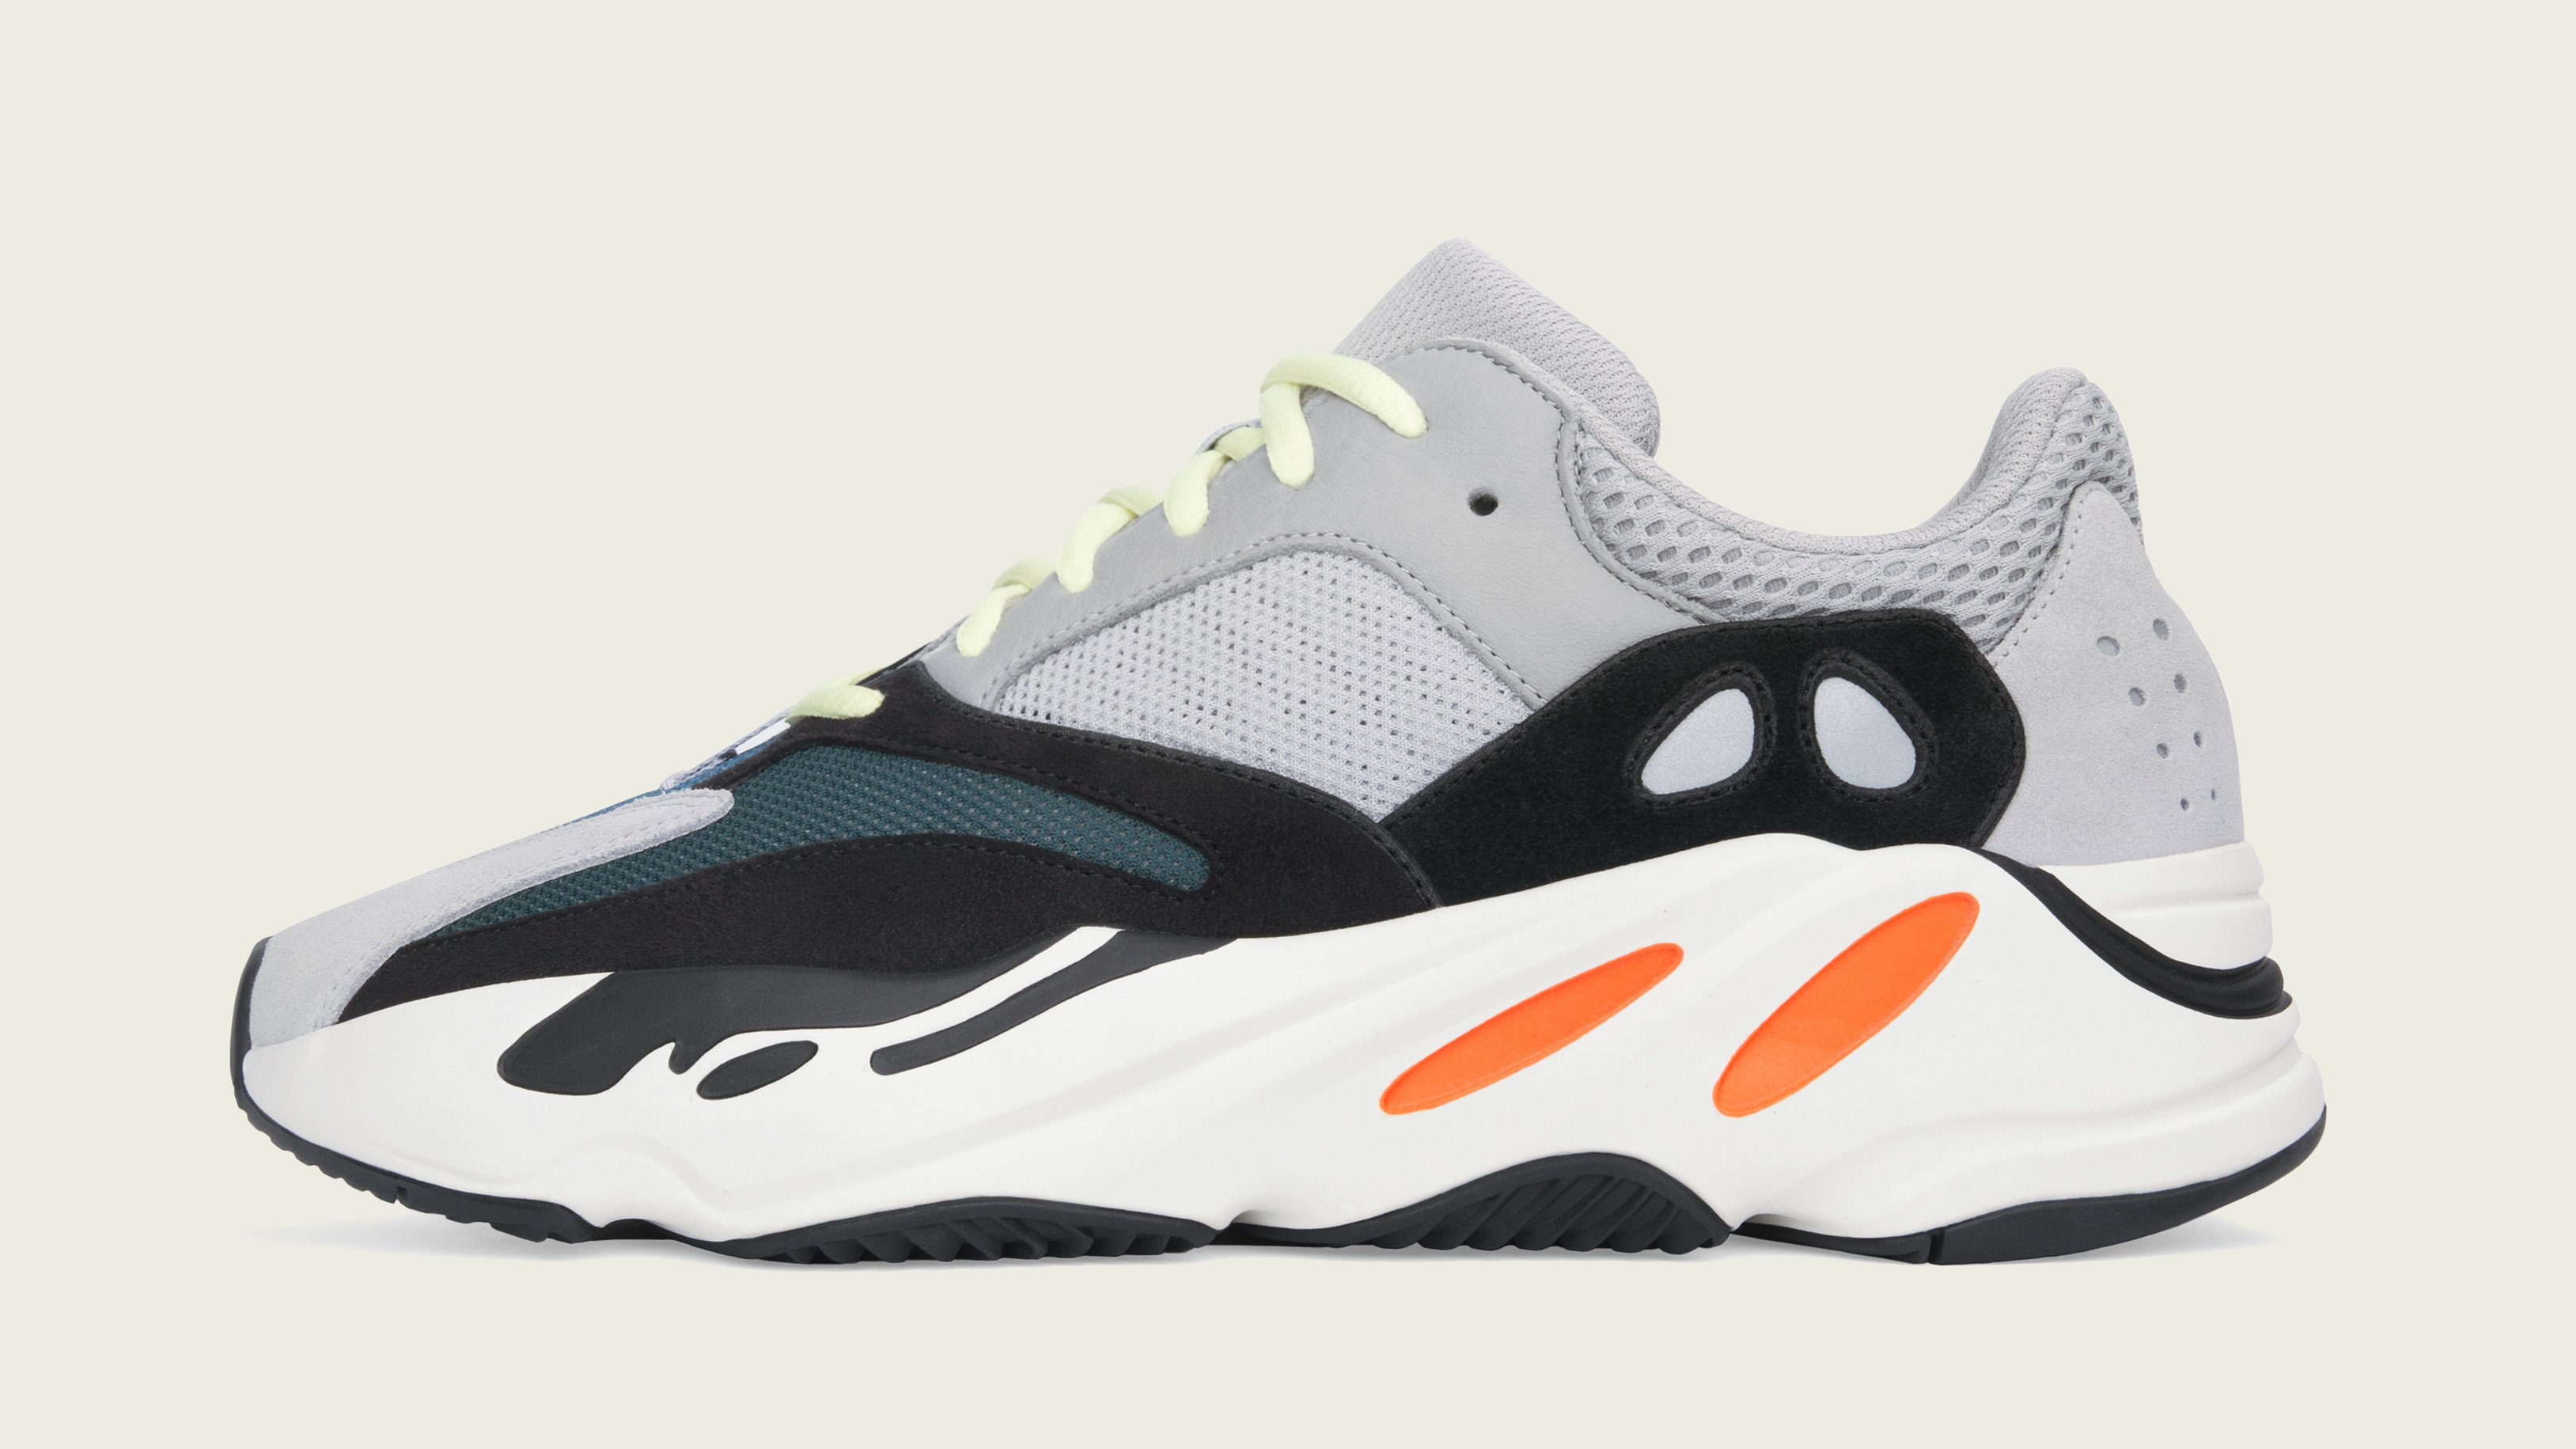 856f60a0f22ae Adidas Yeezy Boost 700  Wave Runner  B75571 September Restock